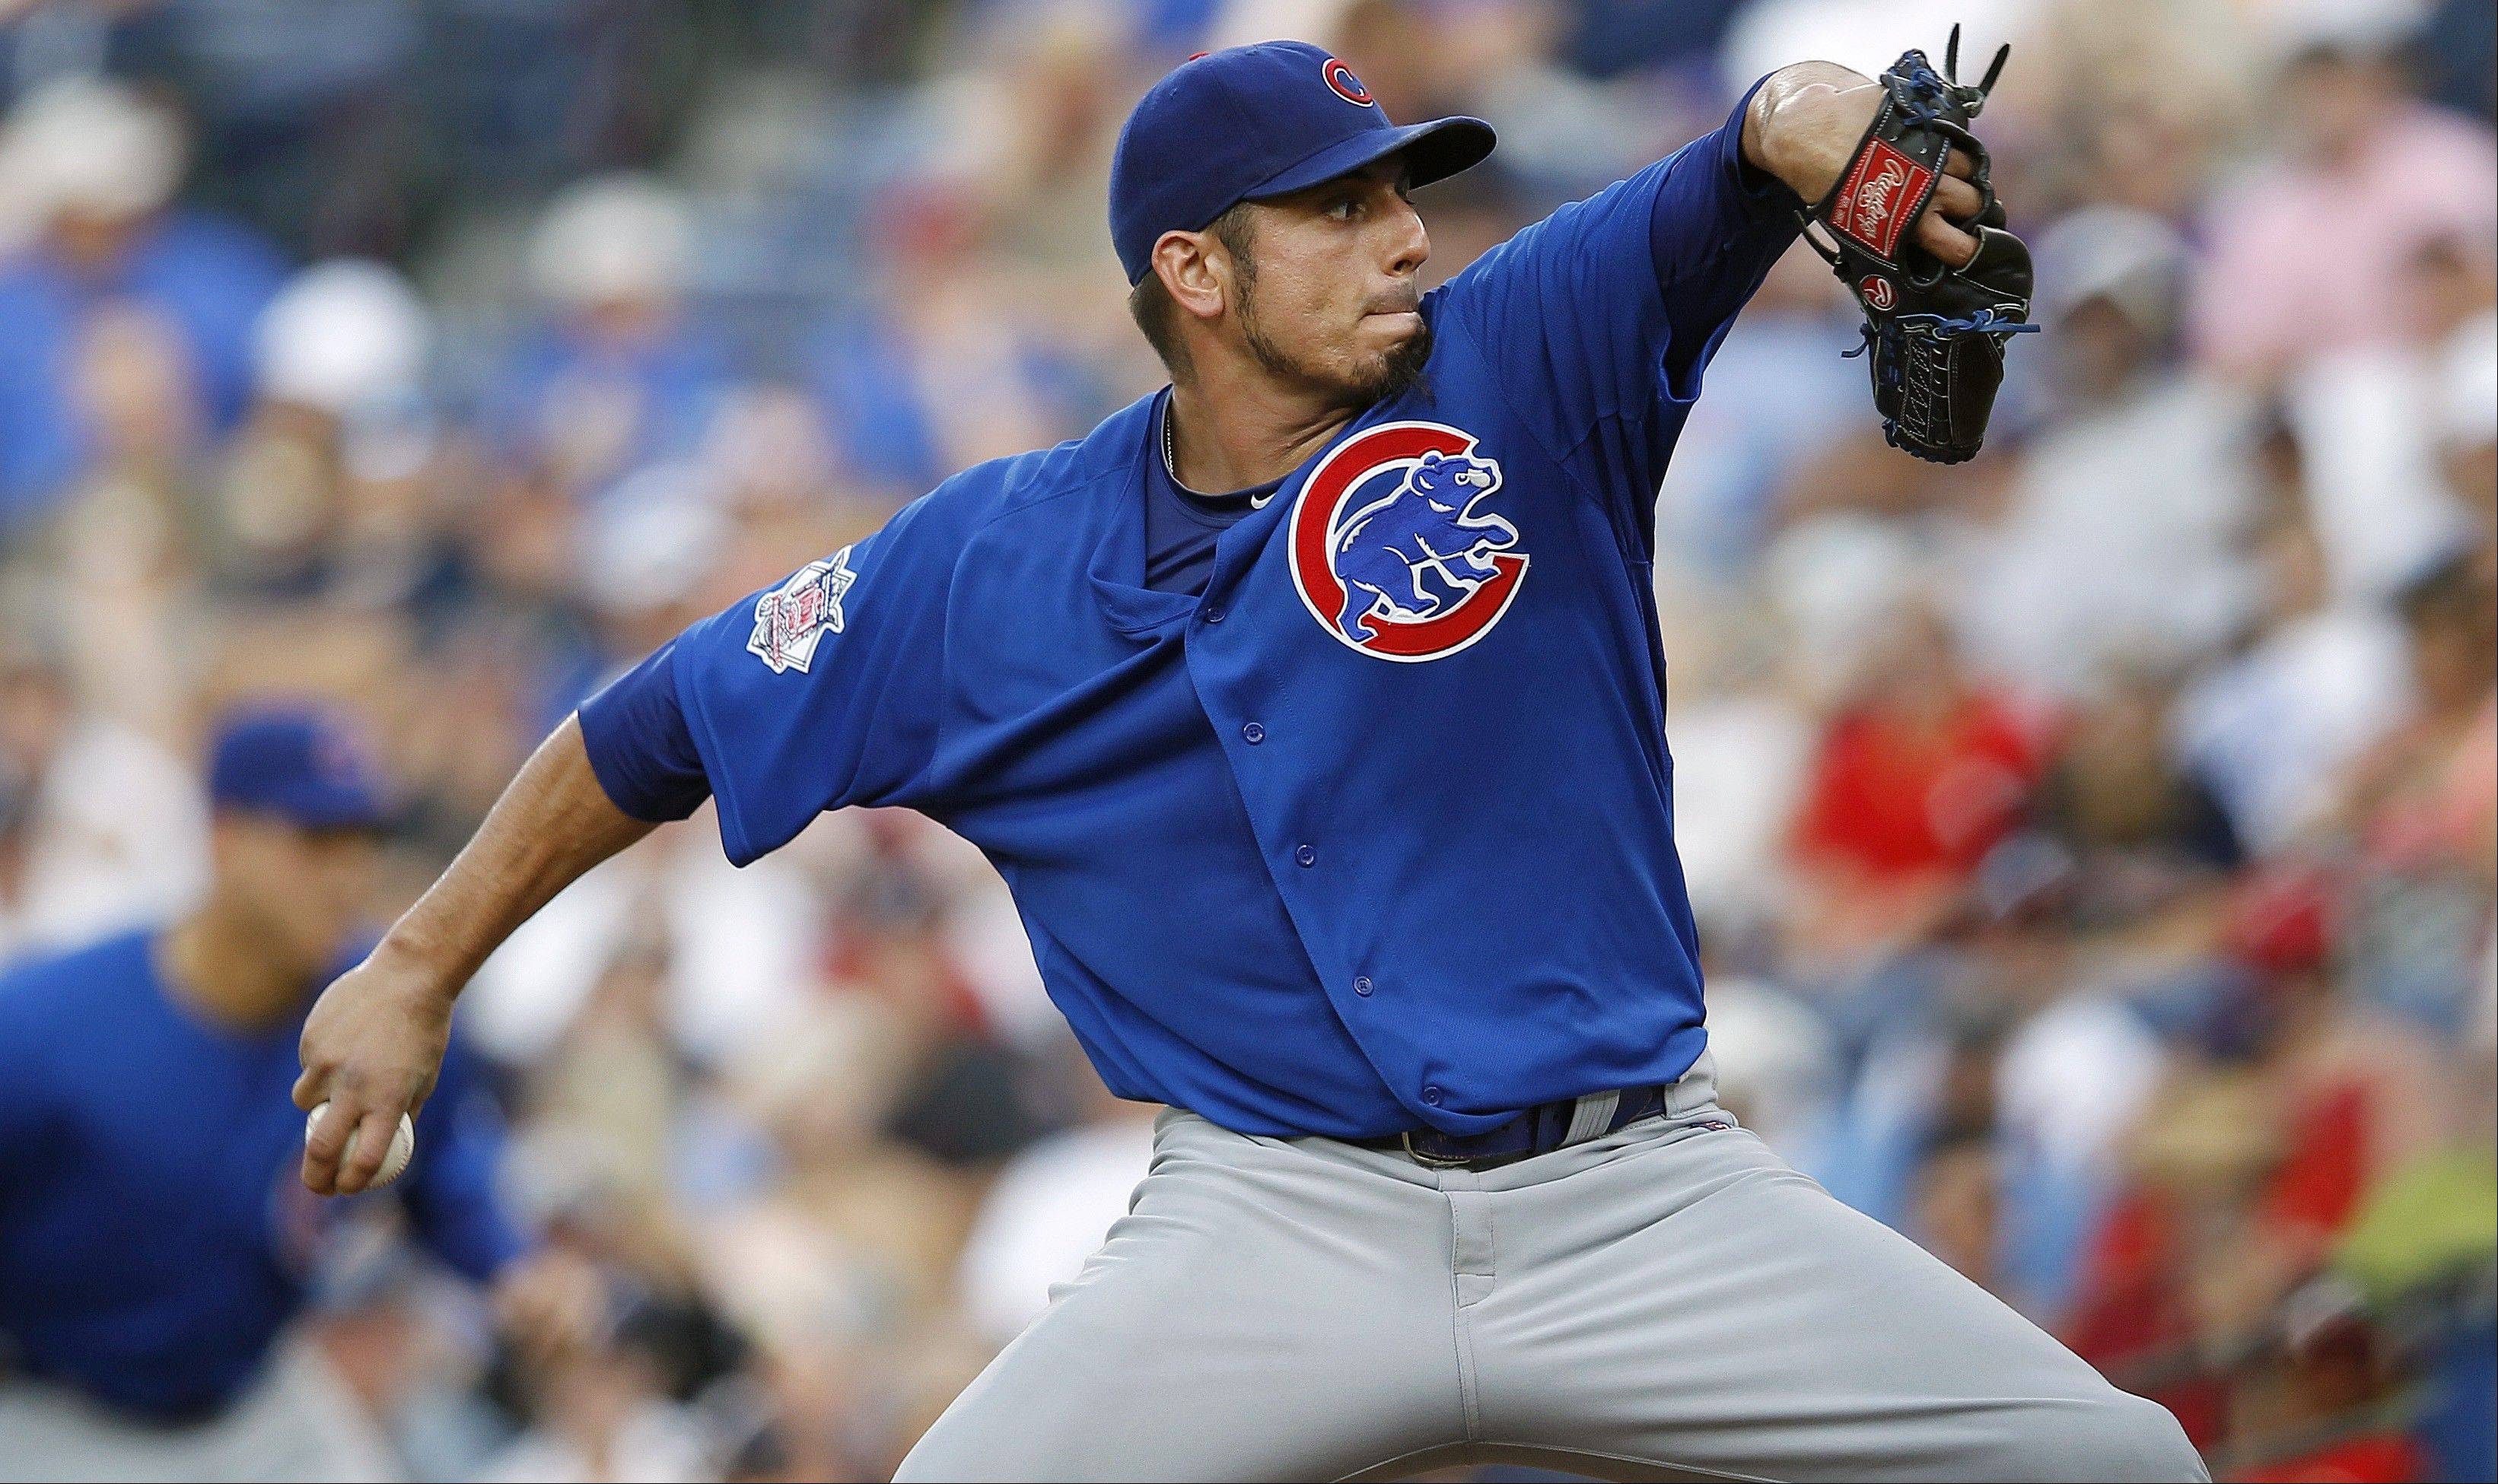 Cubs starting pitcher Matt Garza works Thursday during the first inning against the Atlanta Braves in Atlanta.